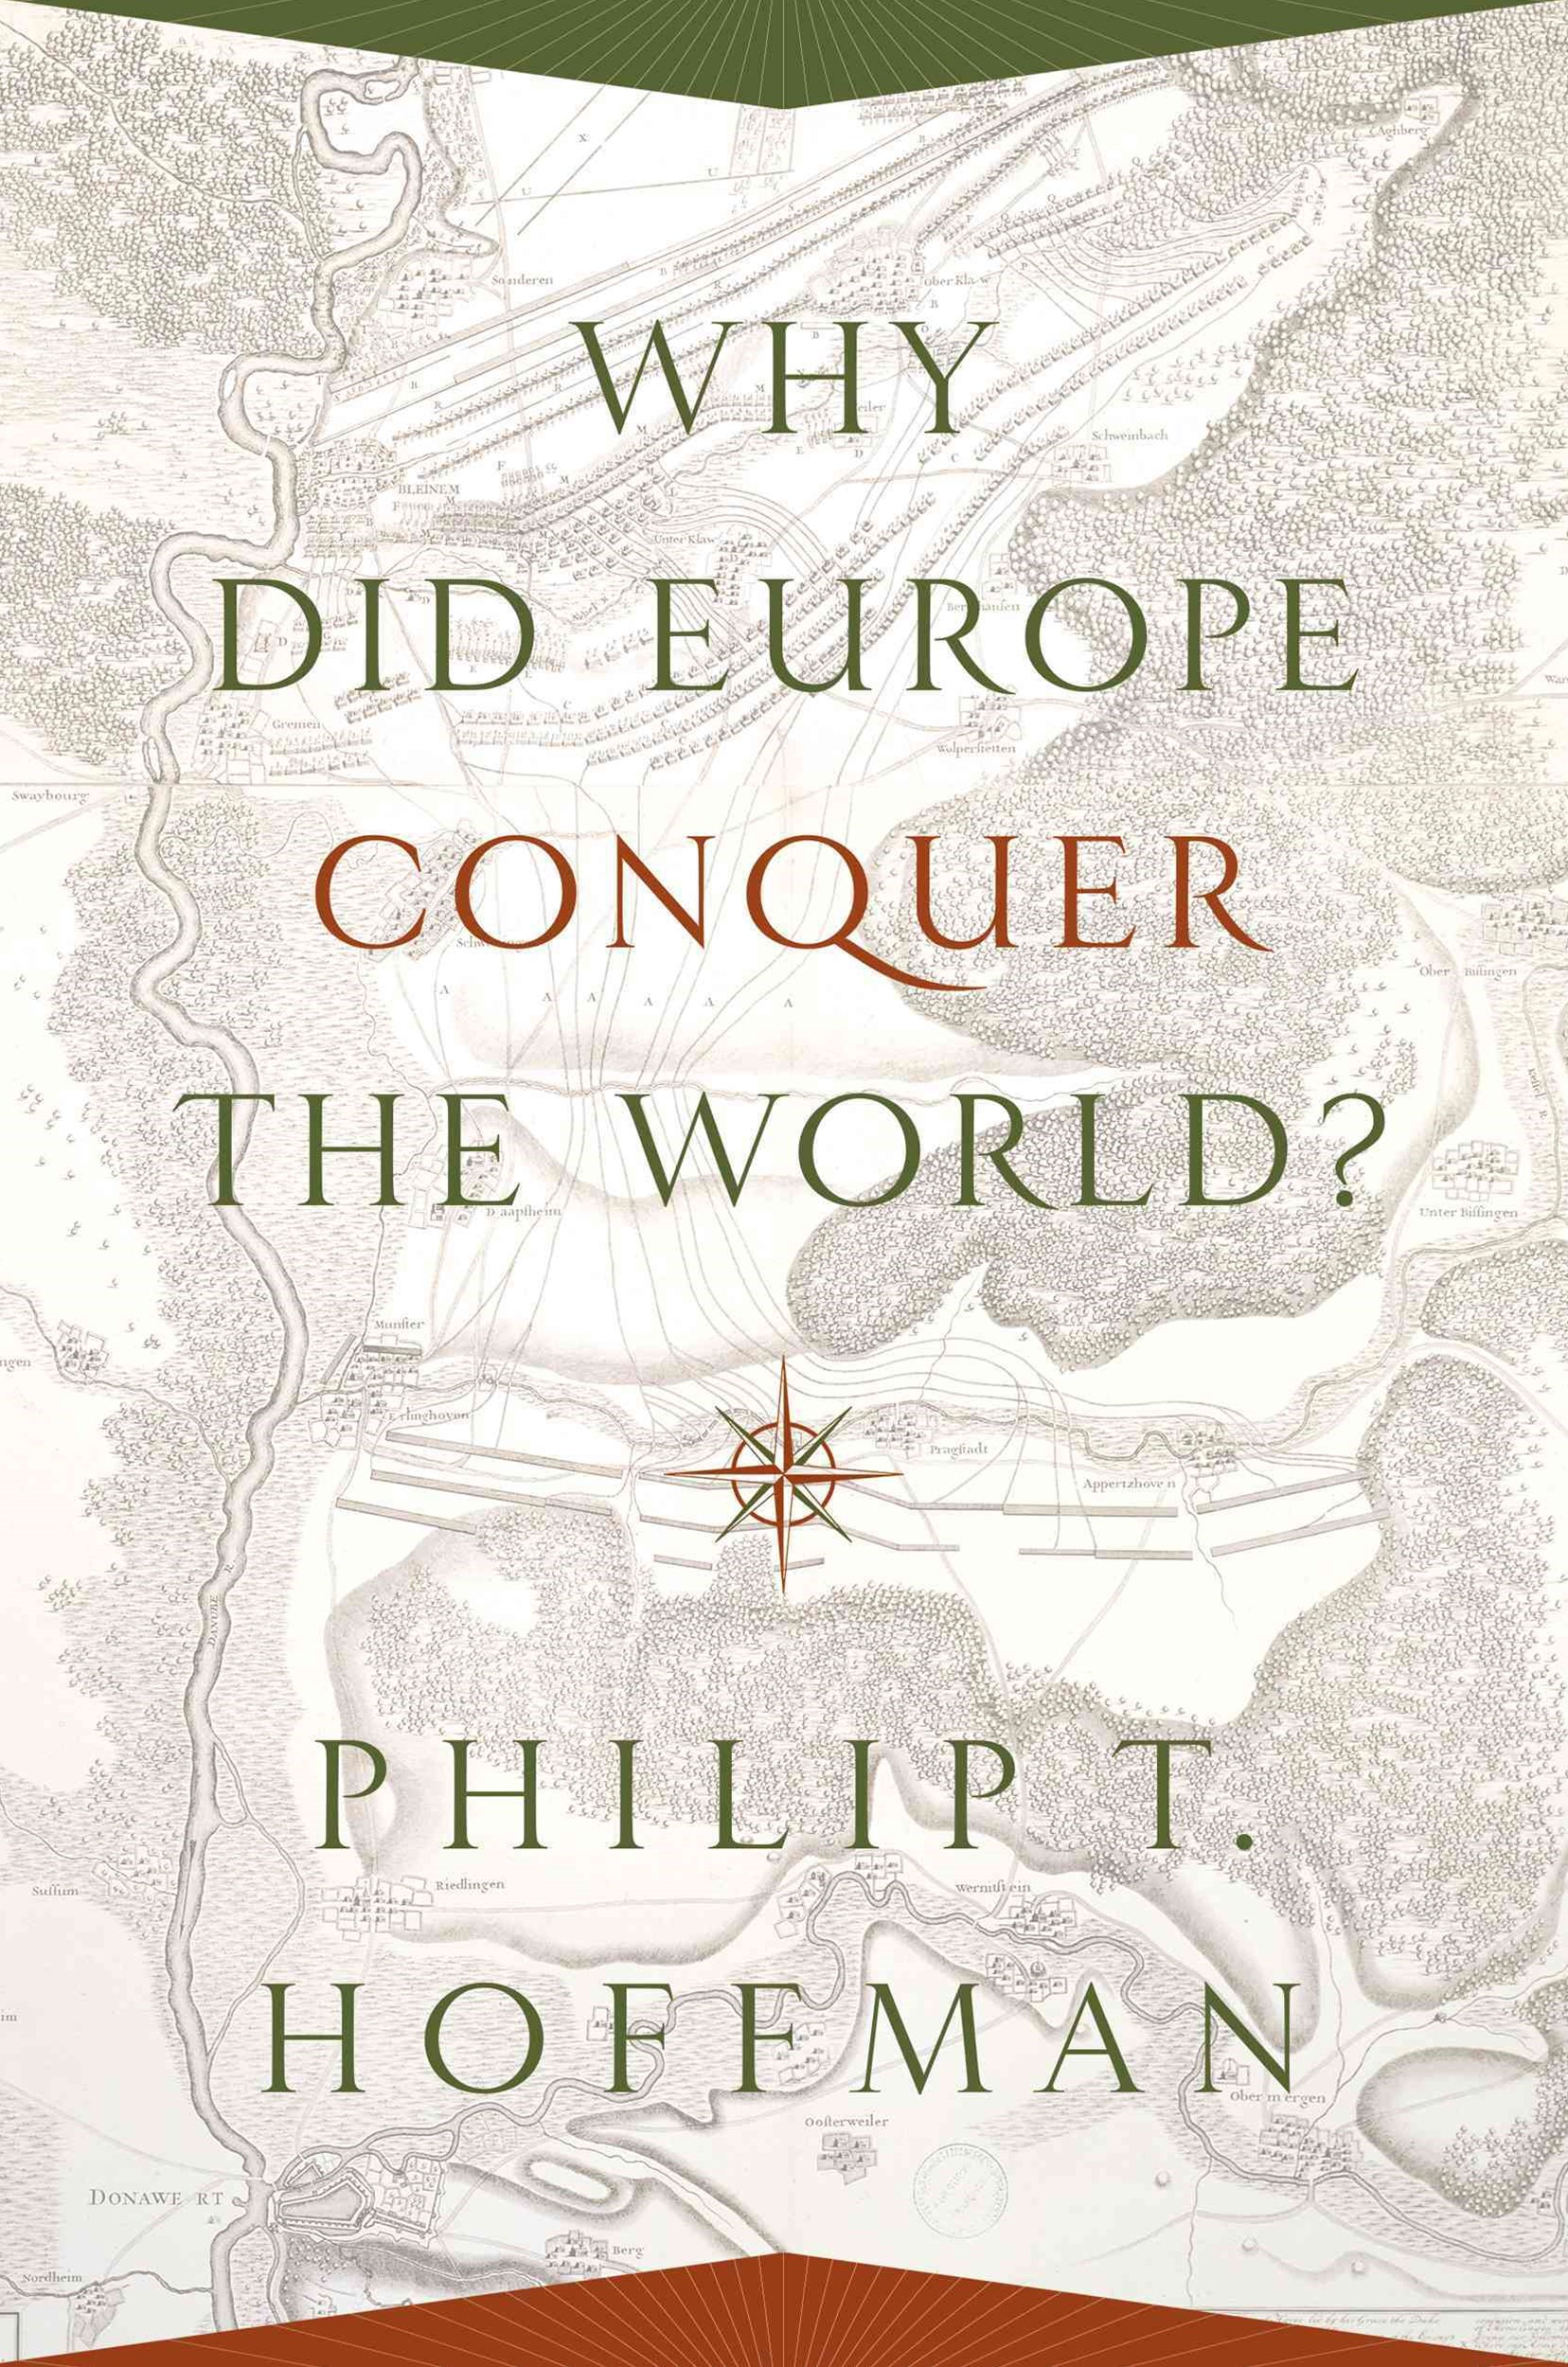 Why Did Europe Conquer the World?